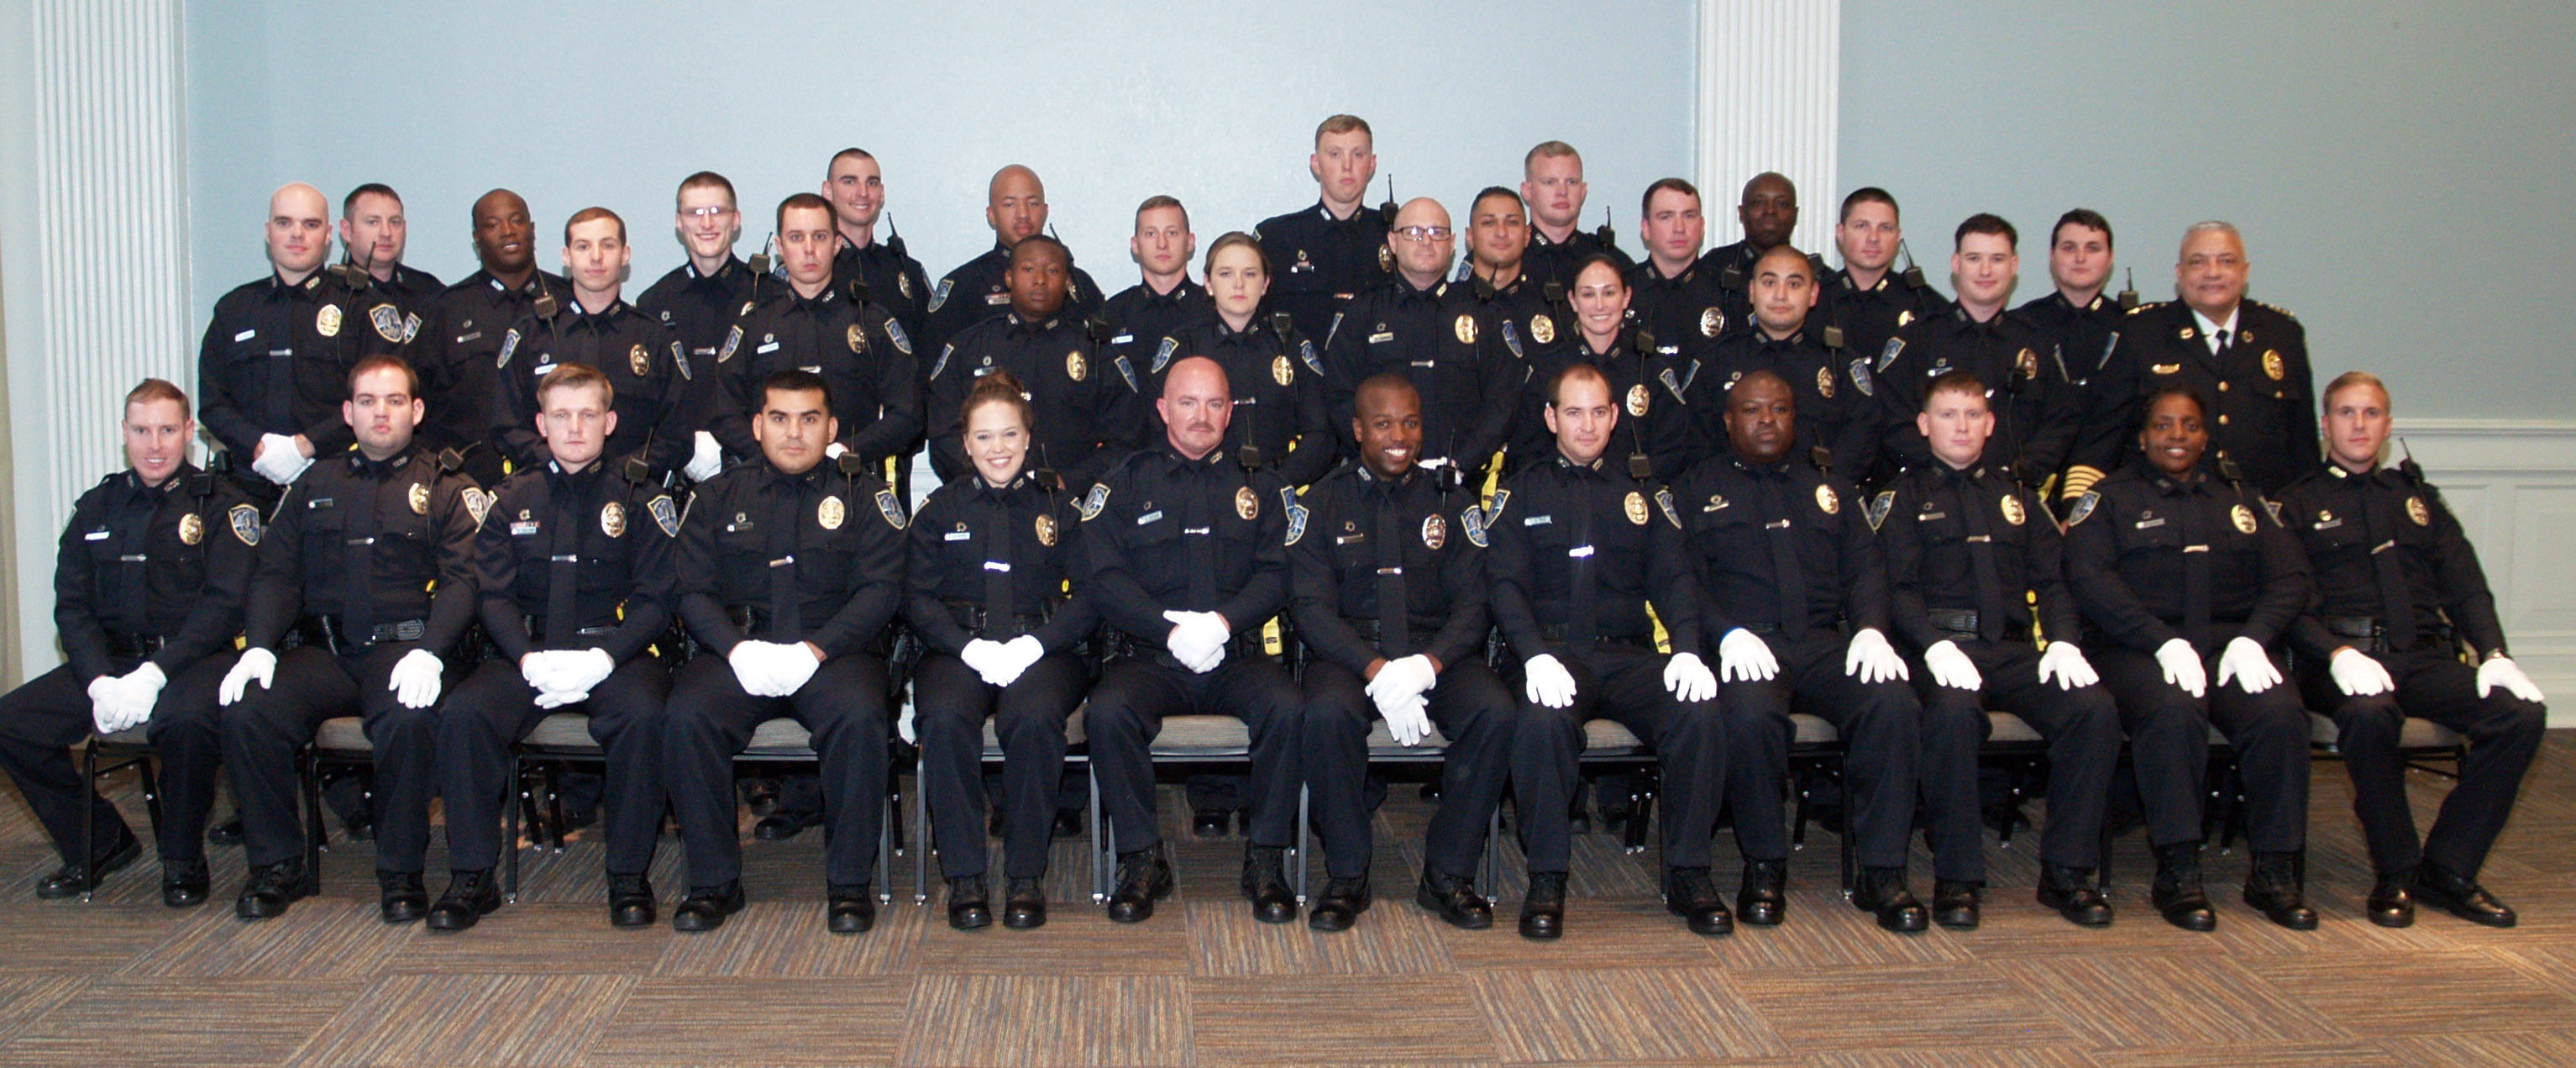 Swearing In Ceremony for 34 New Officers – SAVANNAH POLICE